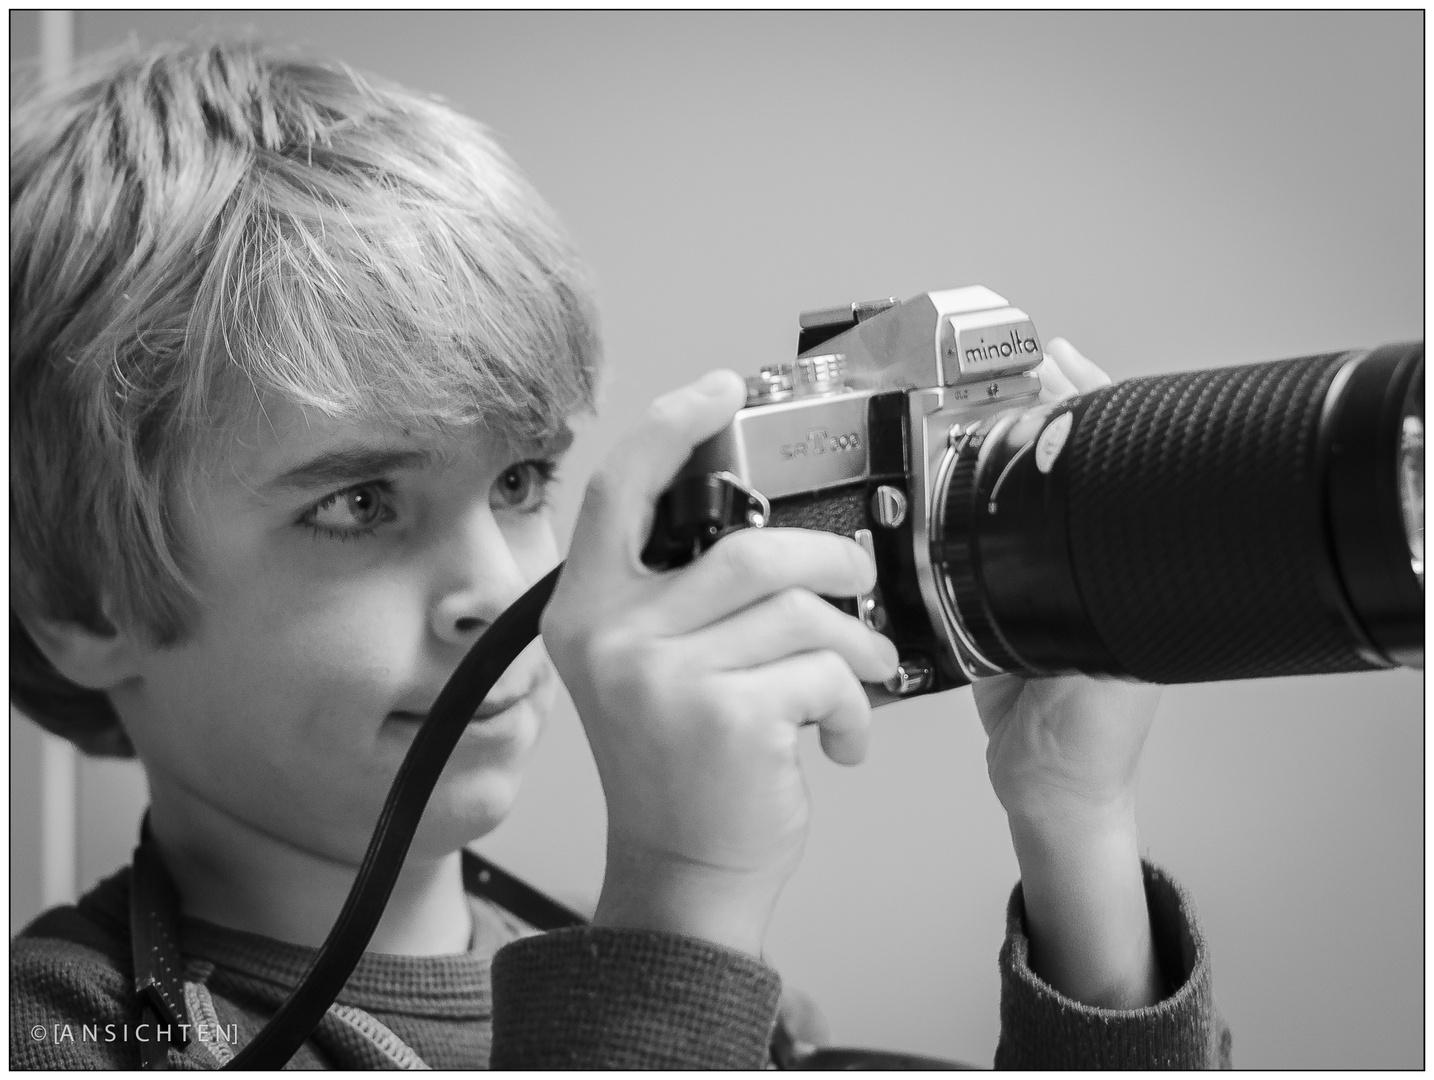 [young photographer]